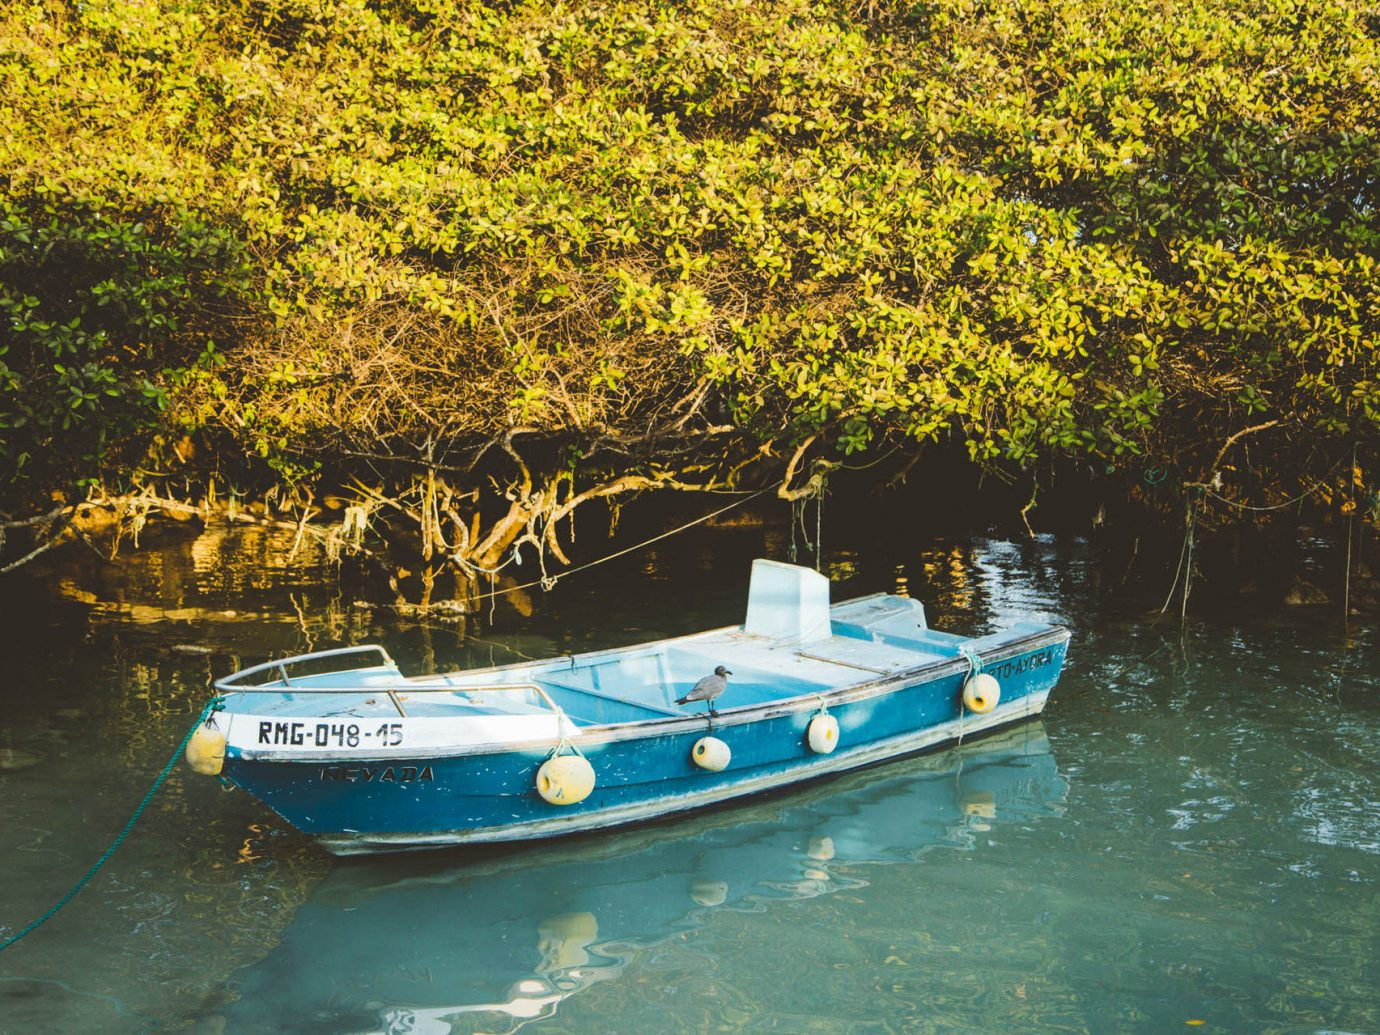 Boat calm Greenery Lake Ocean remote serene south america Trip Ideas water outdoor vehicle River watercraft rowing watercraft waterway reflection Sea